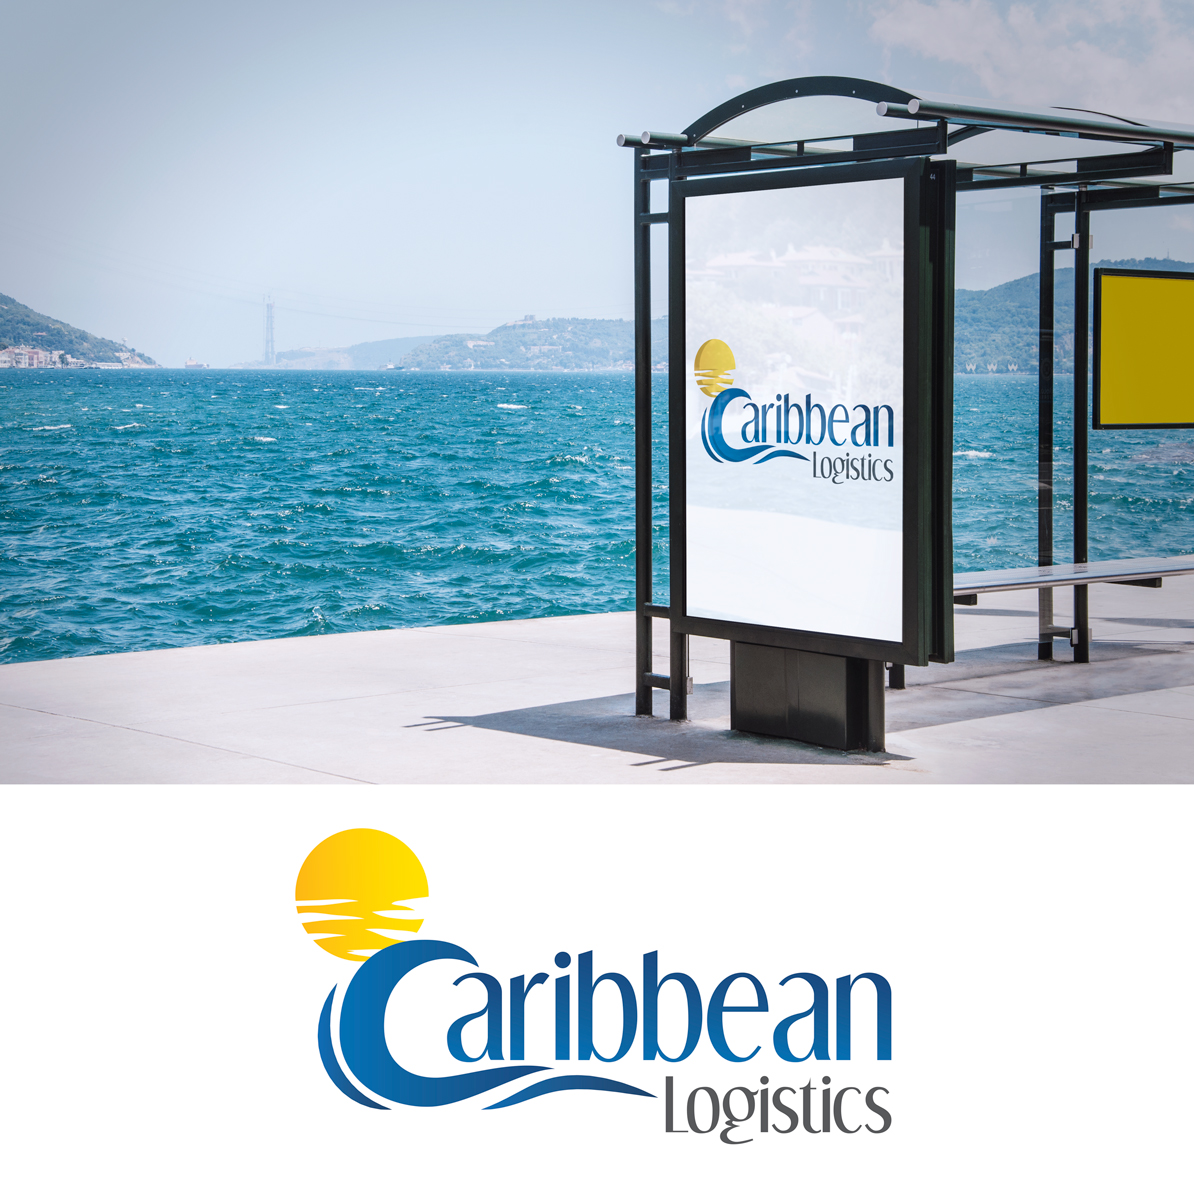 It Company Logo Design for Caribbean Logistics by Black